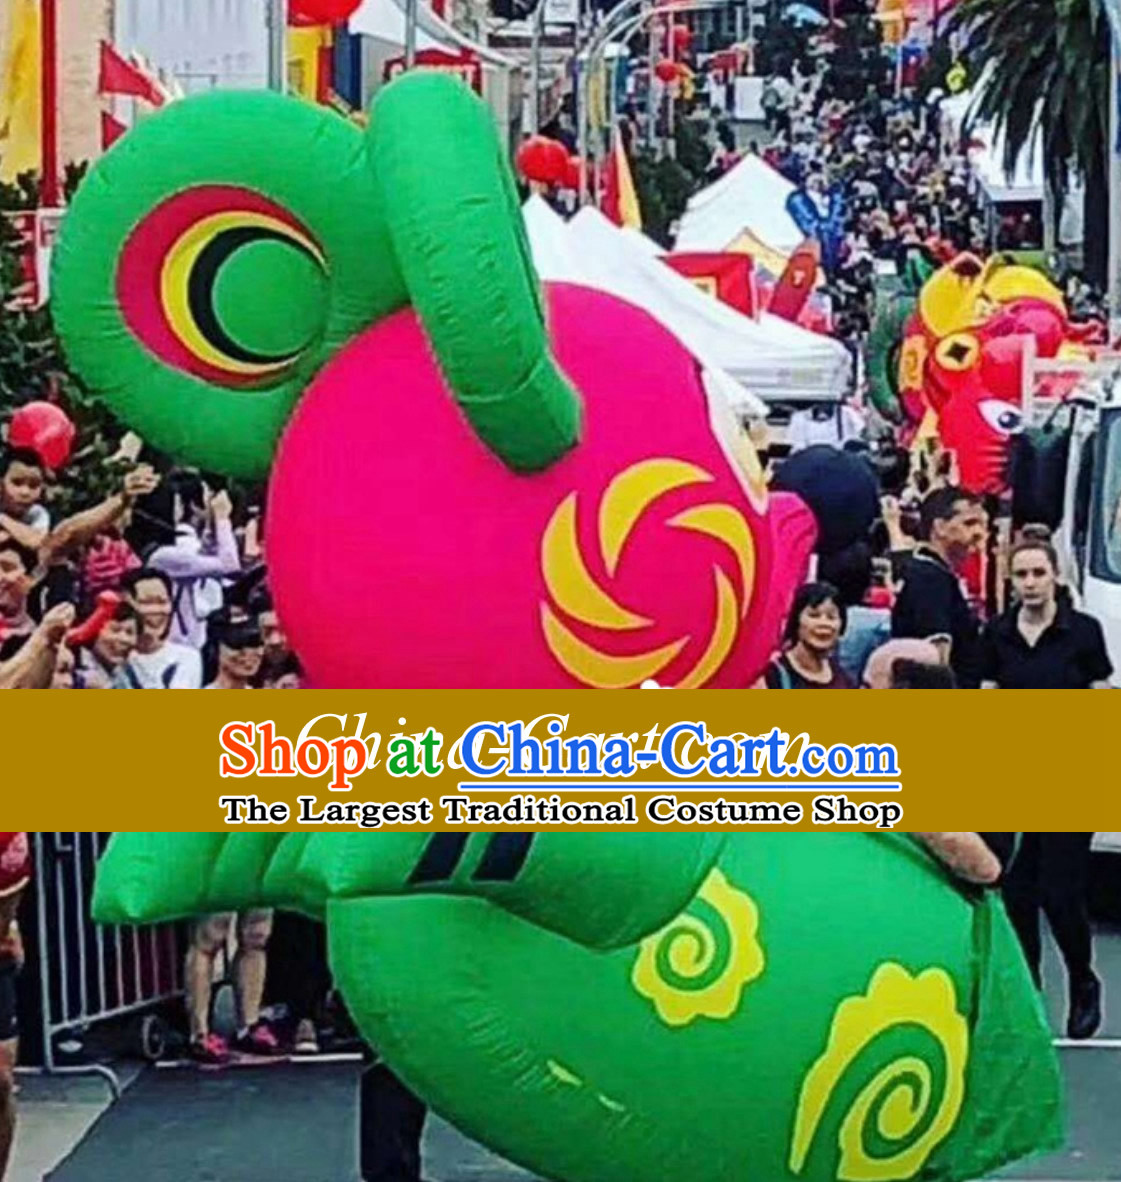 Chinese New Year Decorations Parade Giant Inflatable Lucky Rat Complete Set